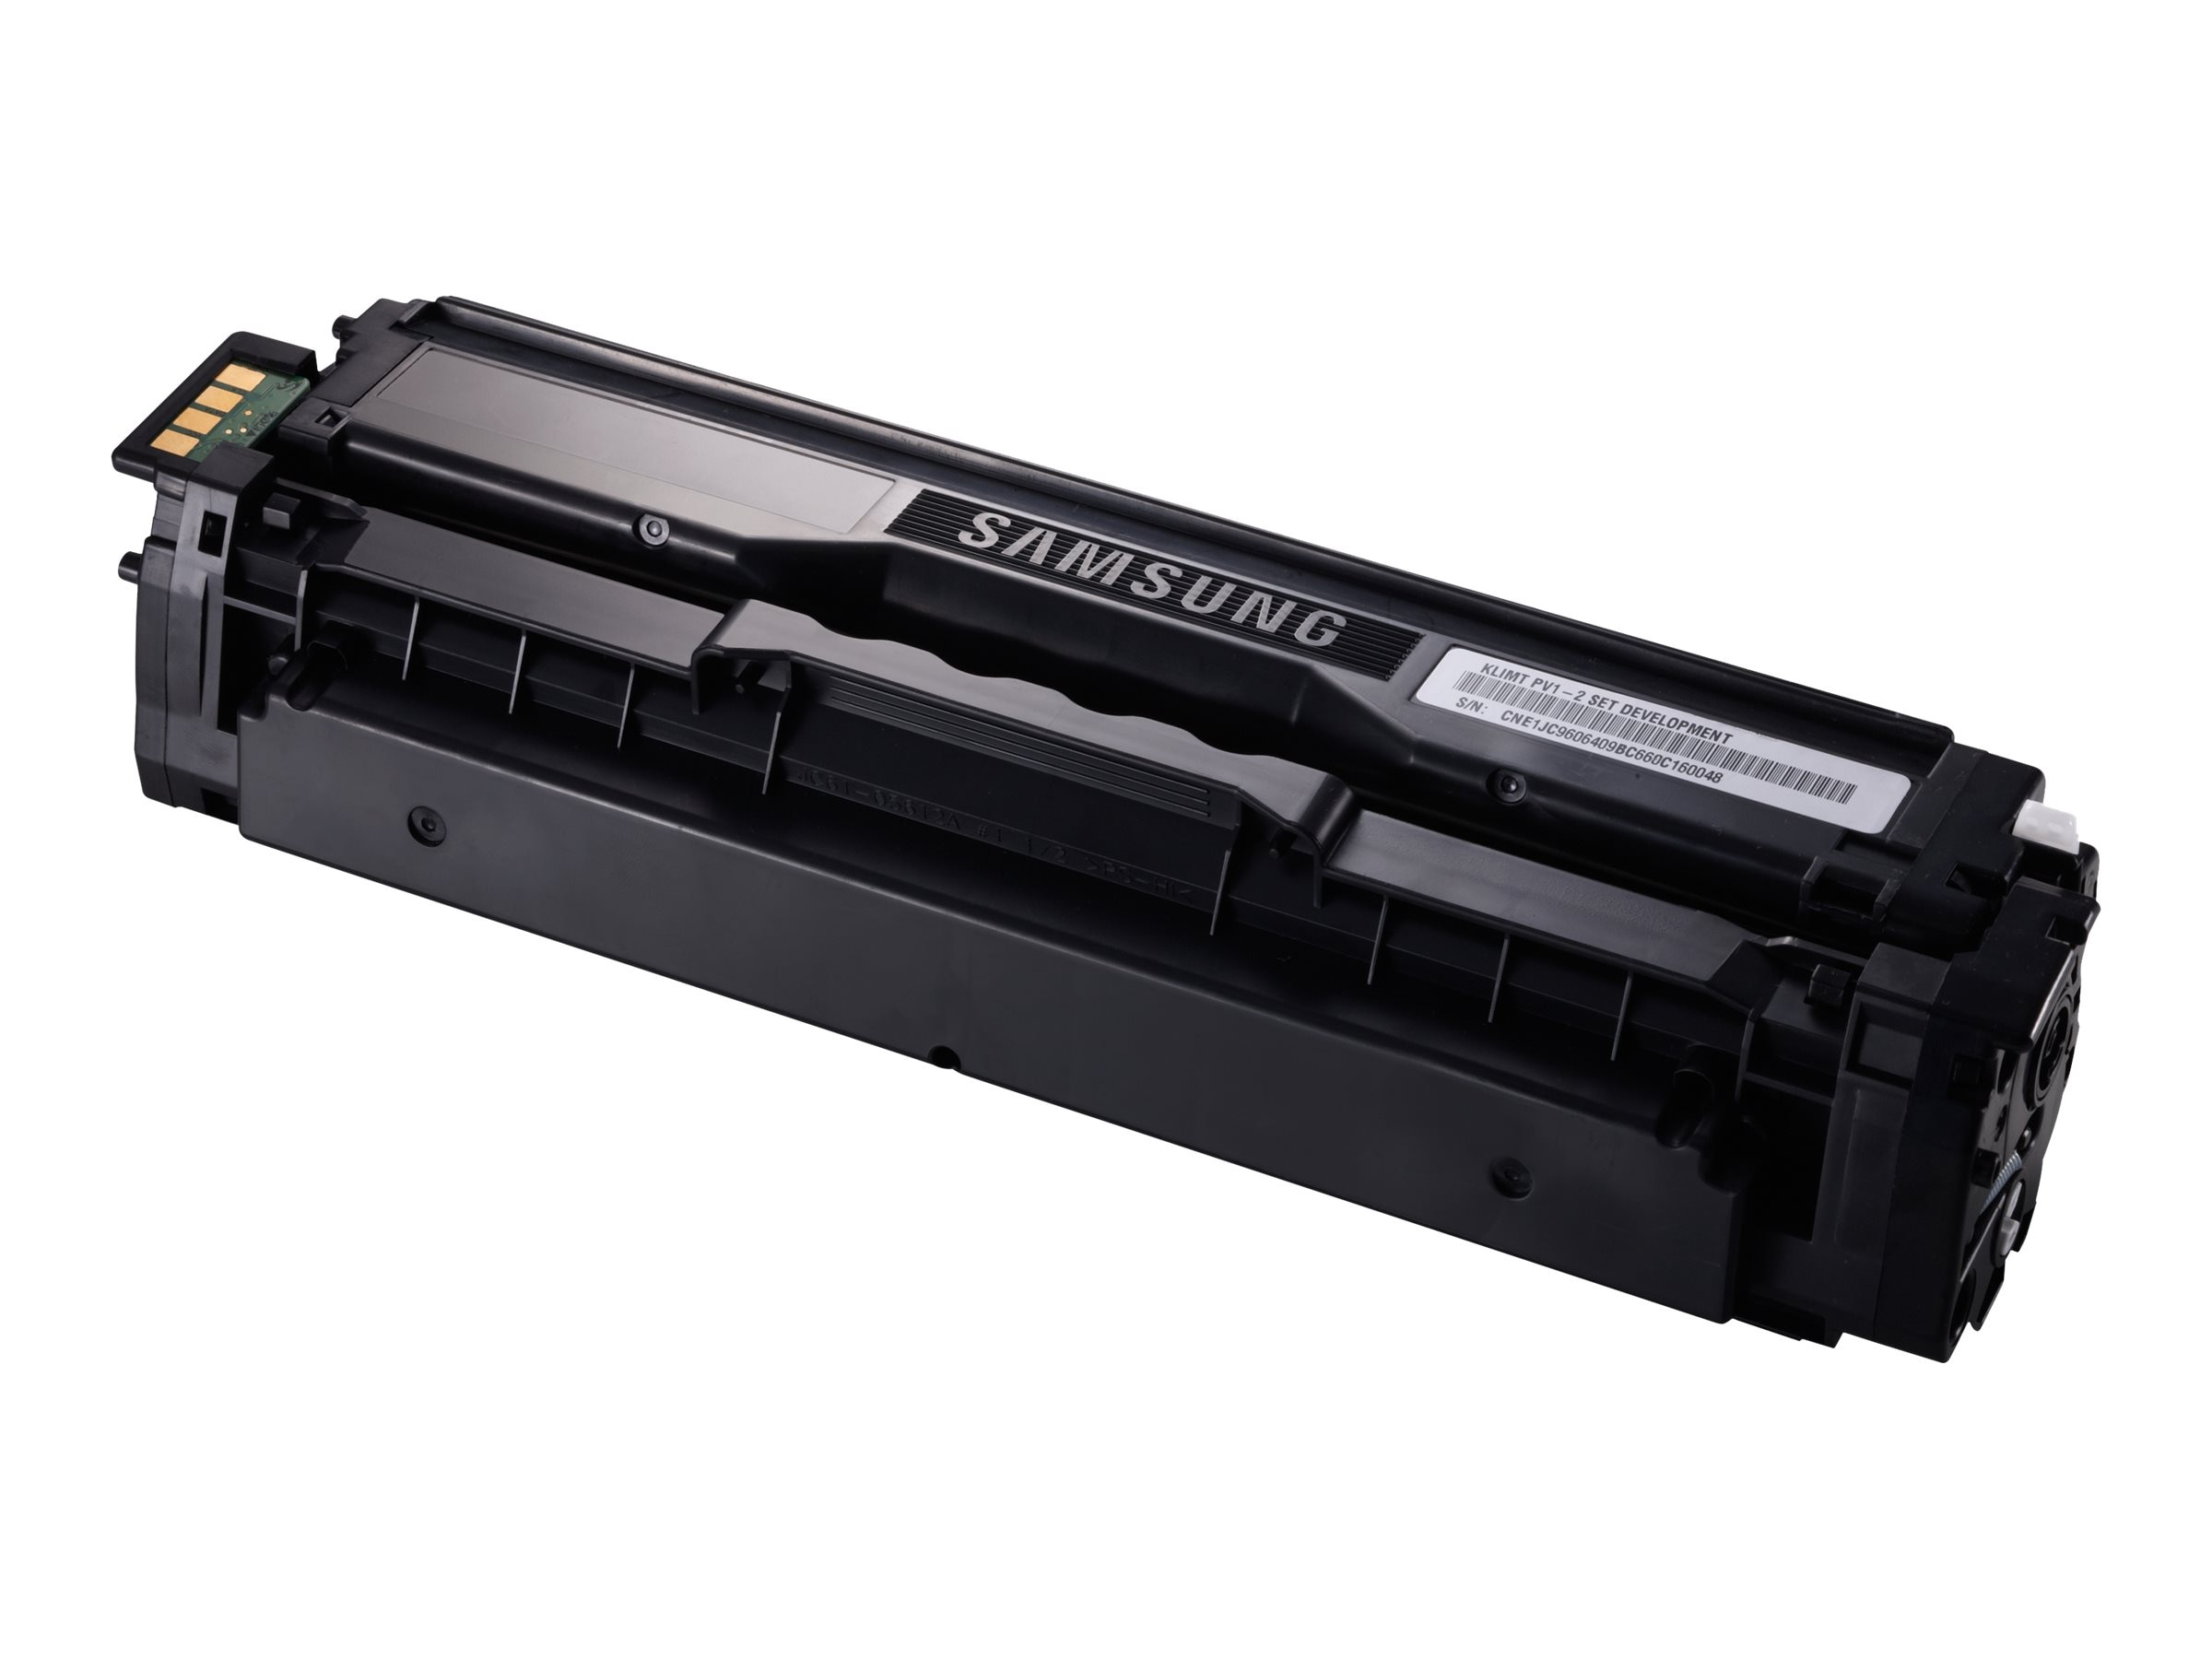 Samsung Black Toner Cartridge for CLP-415NW Color Laser Printer & CLX-4195FW Color Multifunction Printer, CLT-K504S, 14482522, Toner and Imaging Components